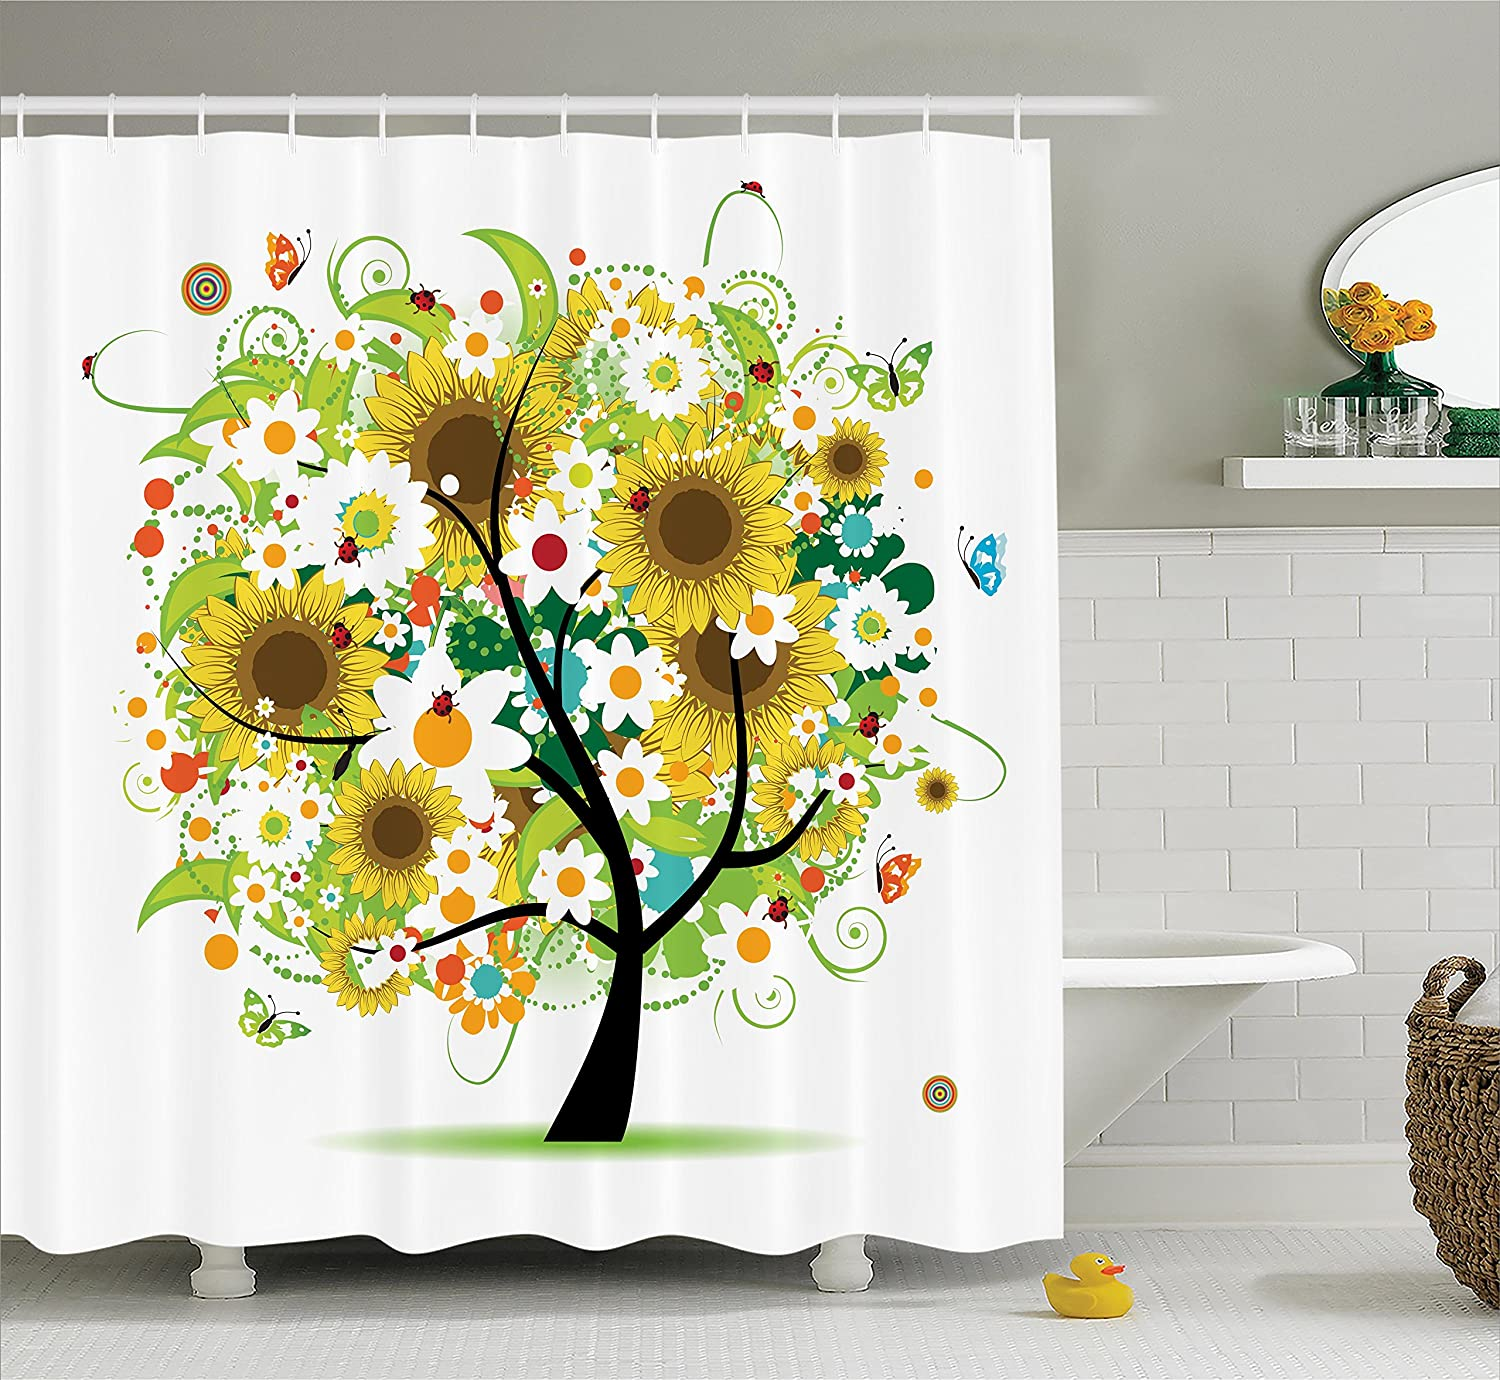 Sunflower bathroom accessories and decor for Spring bathroom ideas